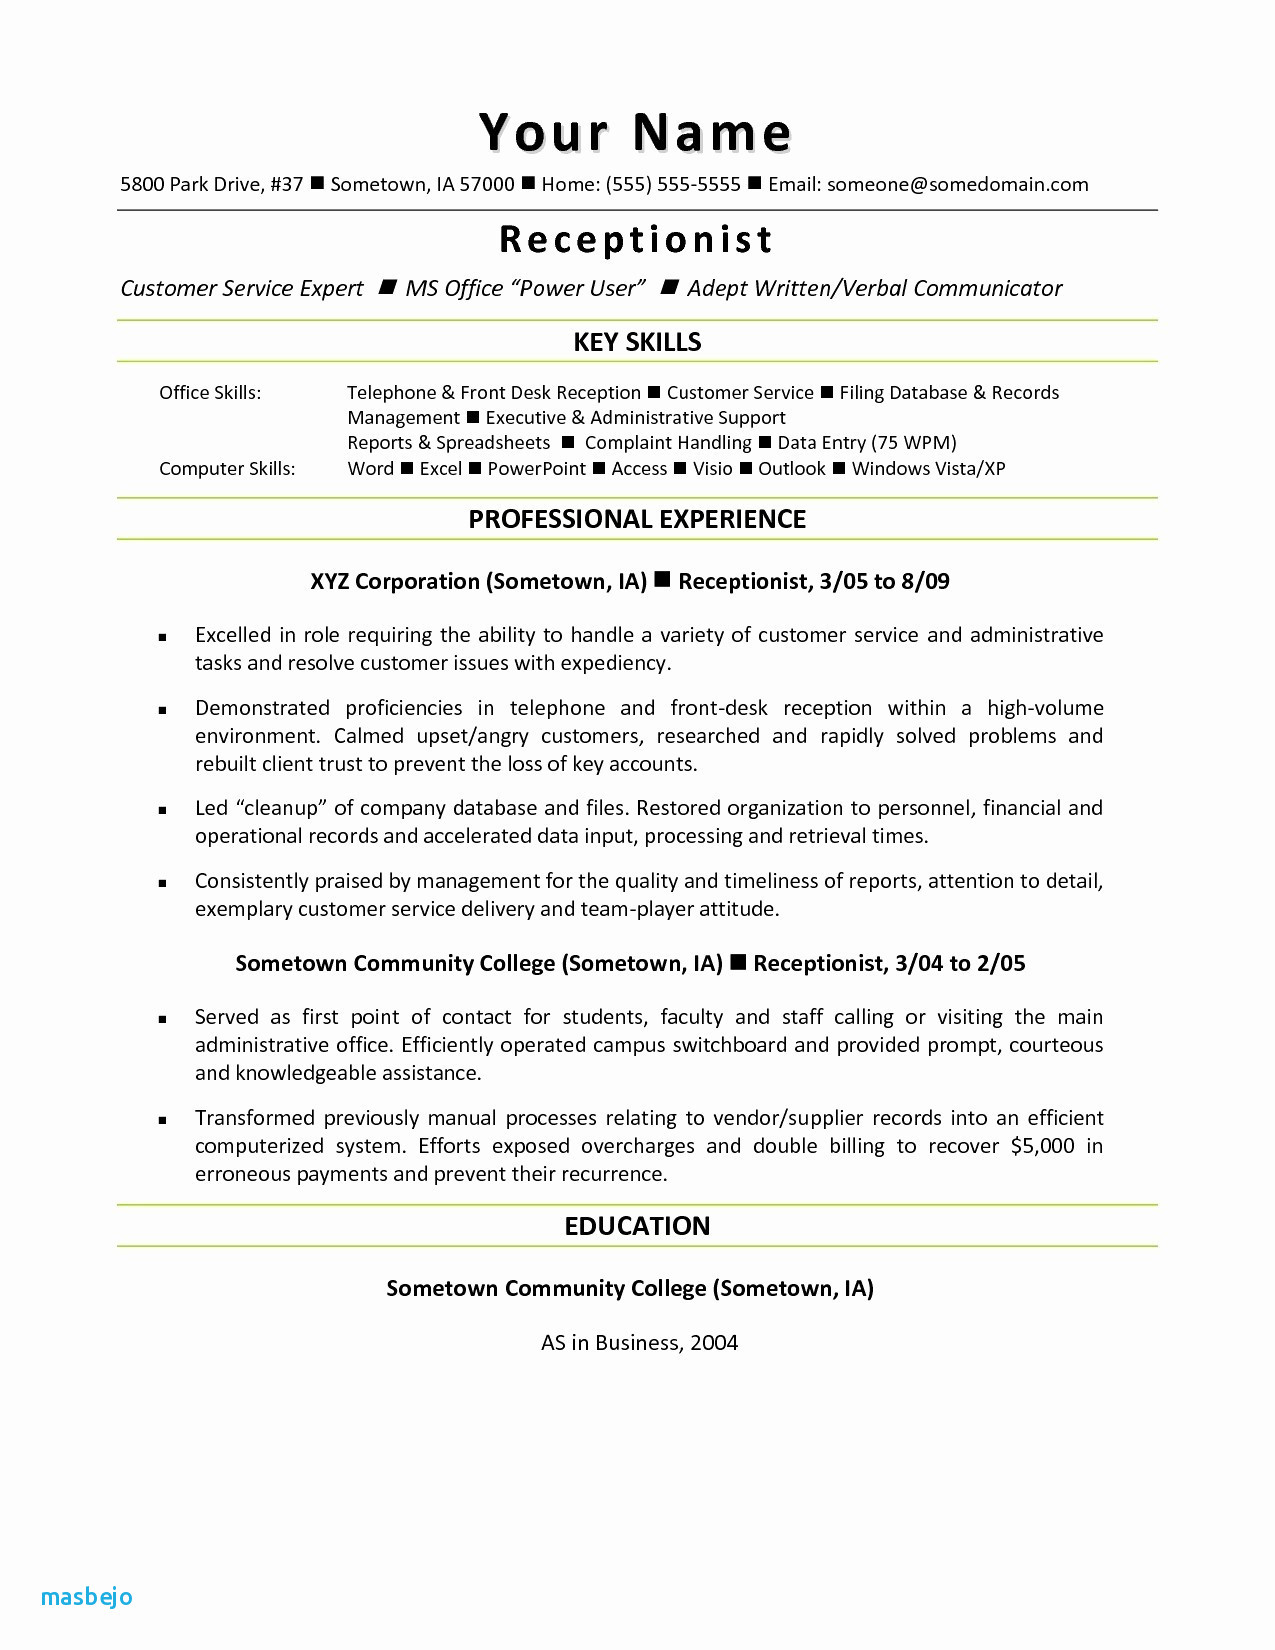 Laborer Job Description for Resume - Construction Worker Resume Resume